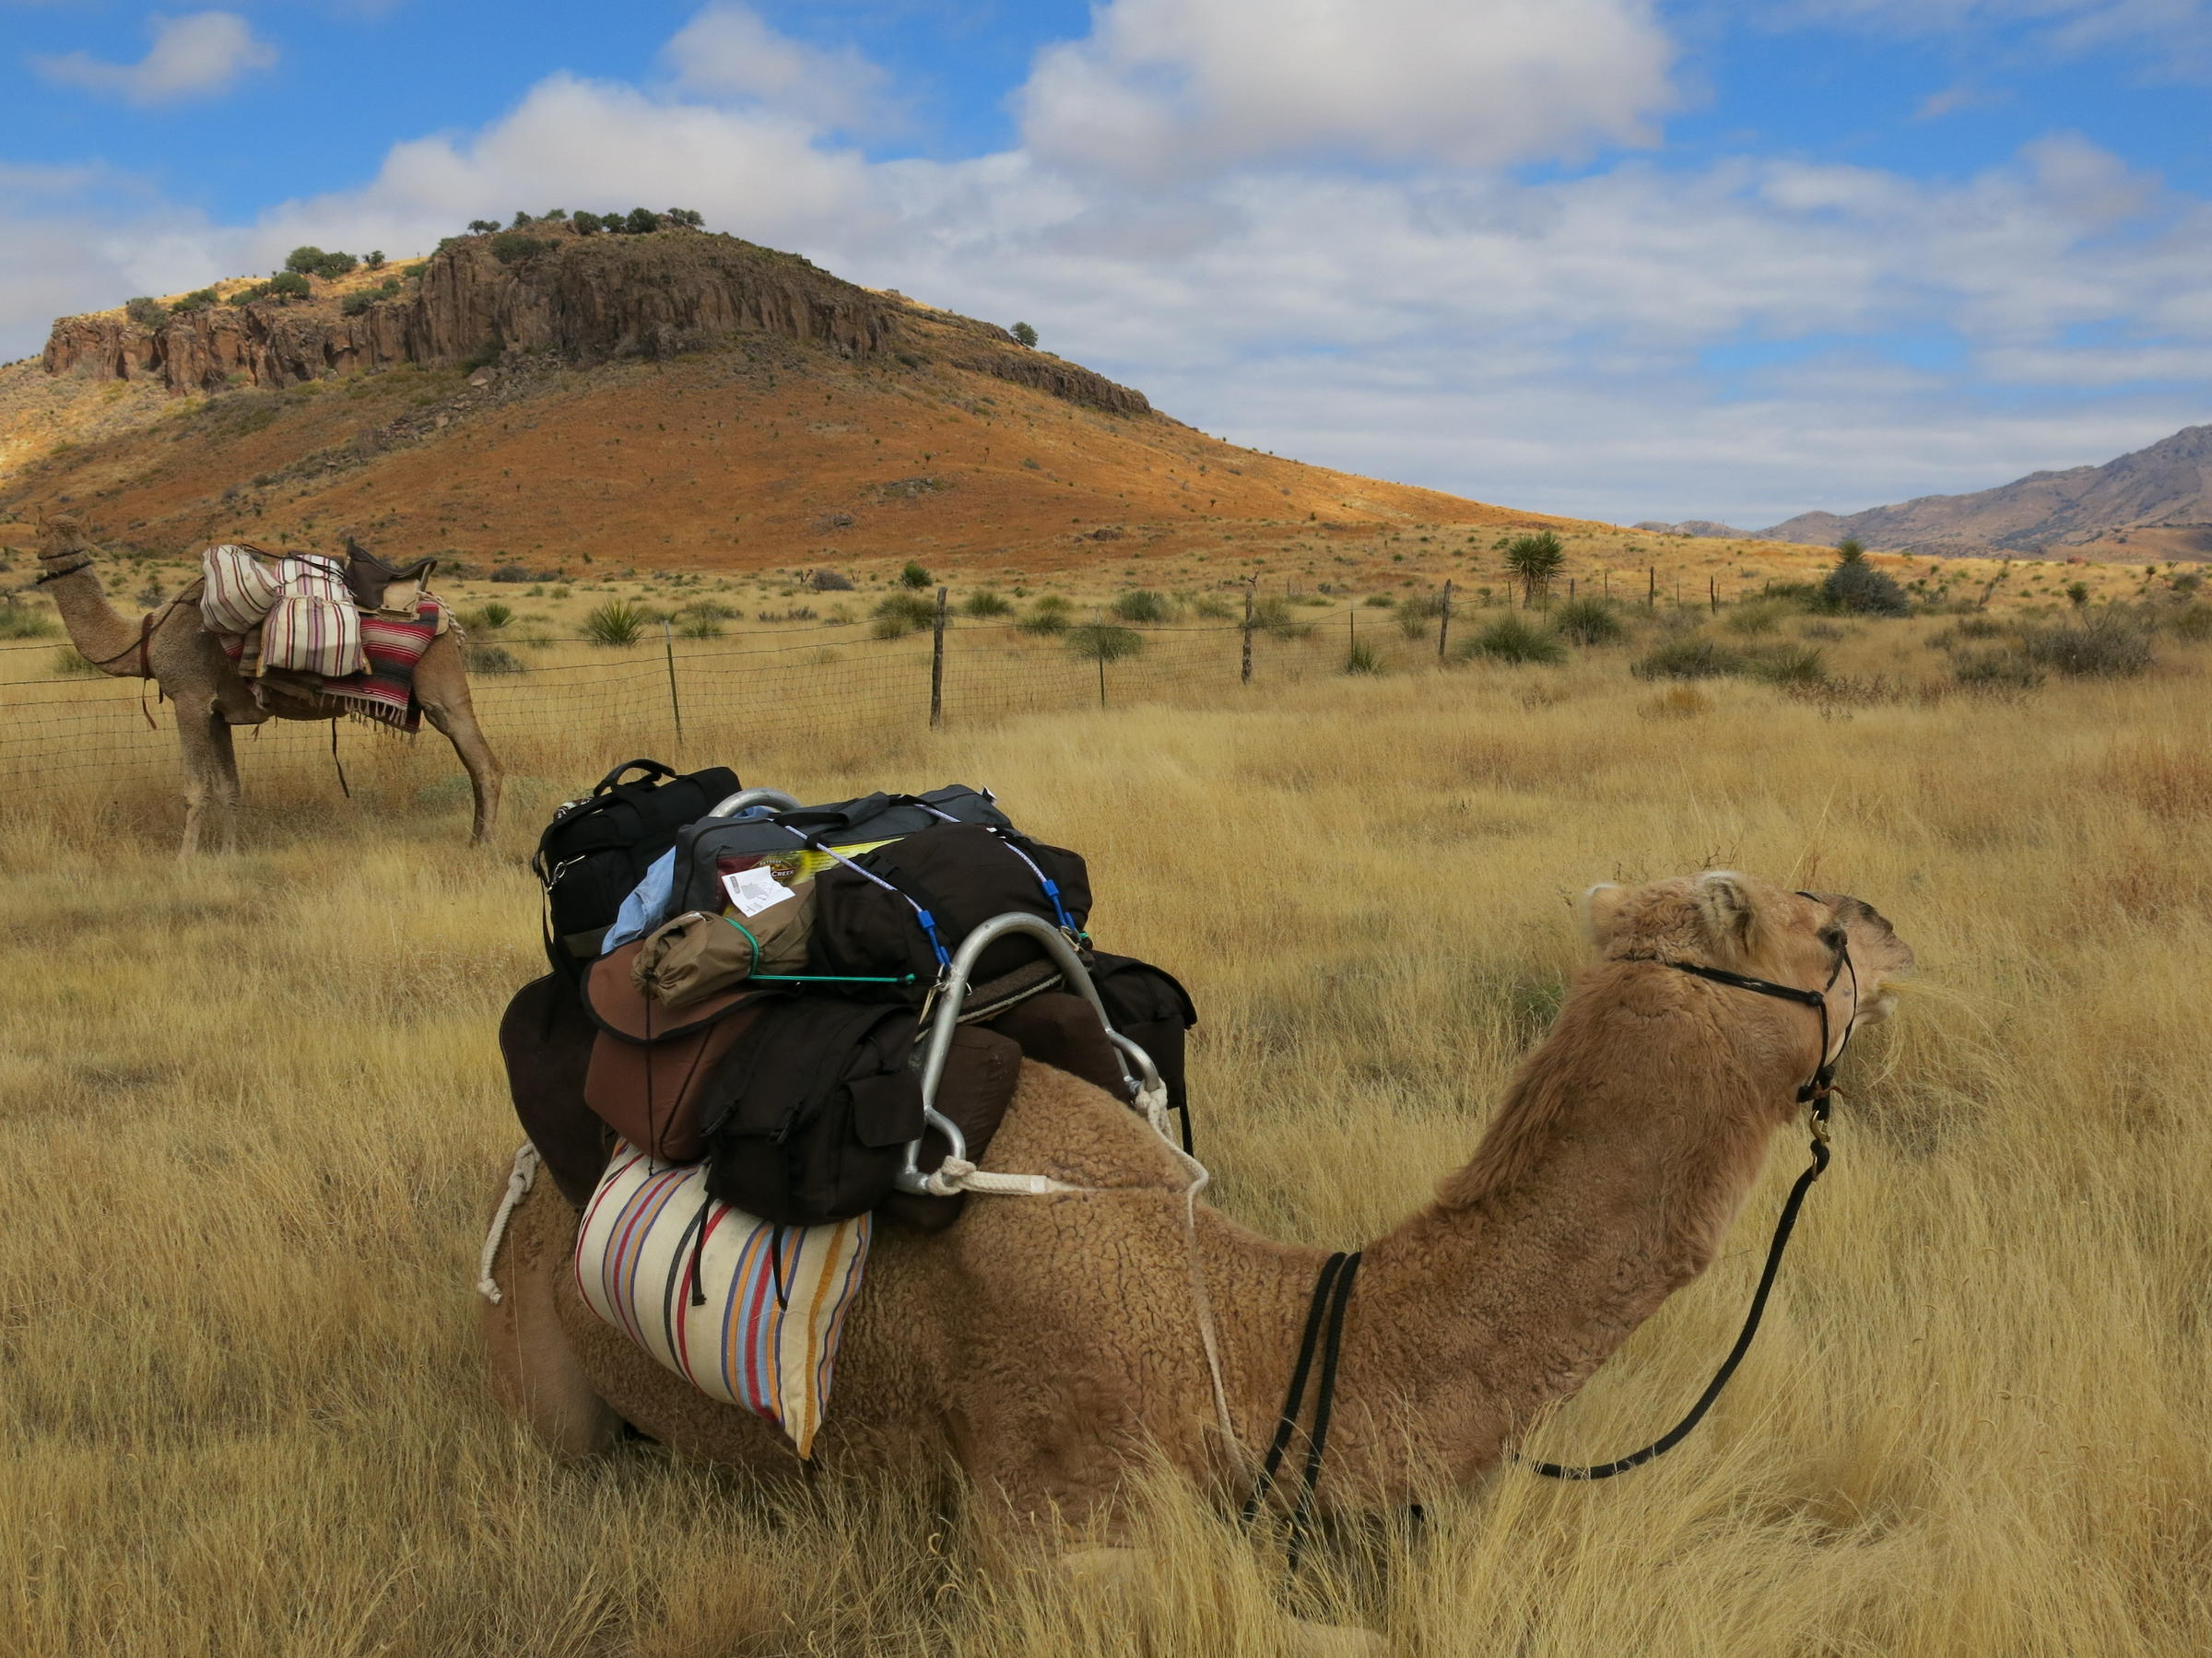 Camels Trek In The Texas Desert, Just Like Old Times | KUT